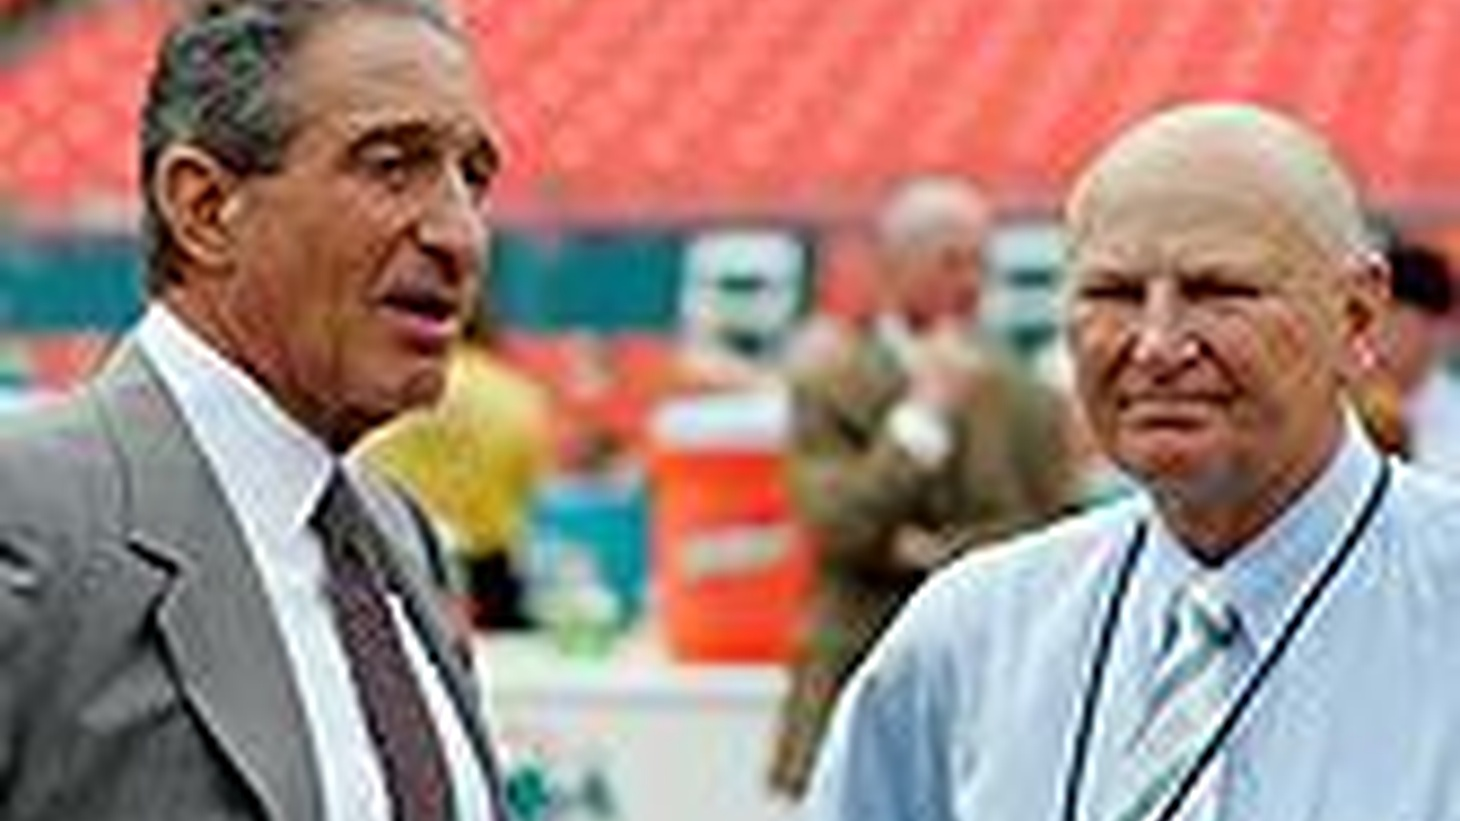 It's not often we find sympathy for filthy rich sports team owners. The